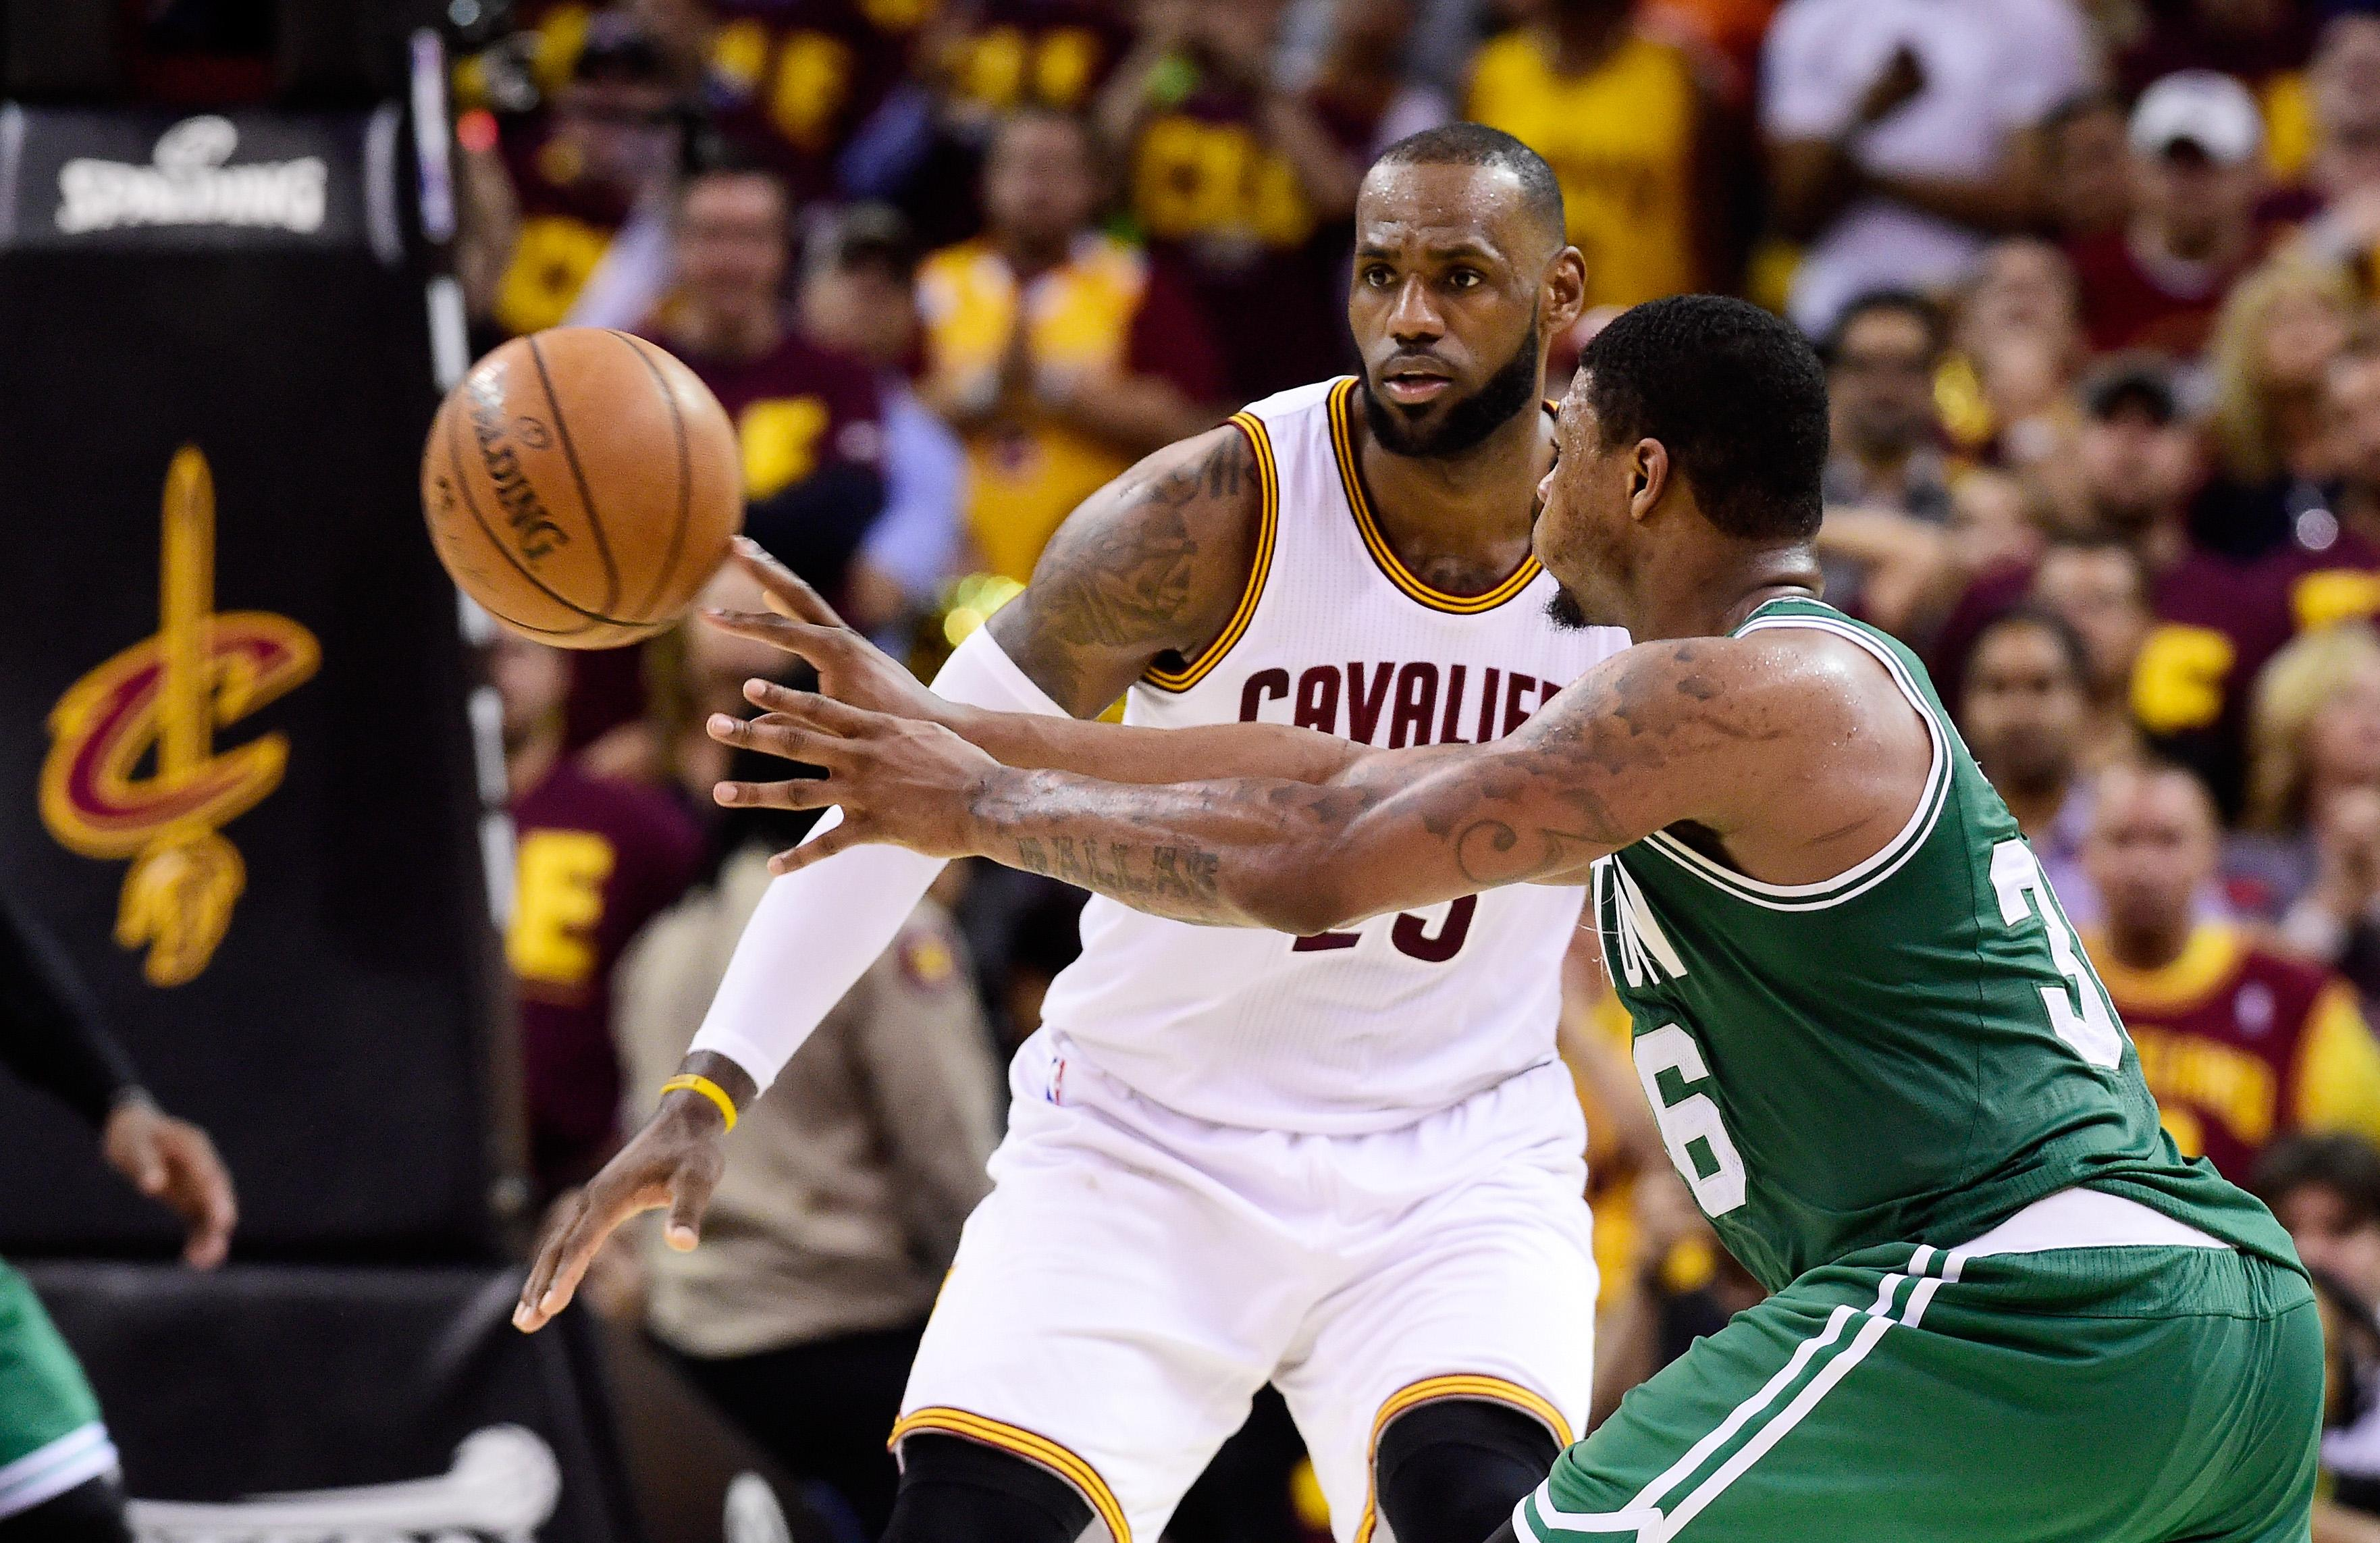 LeBron James on Game 3 performance: 'I was just pretty poor'